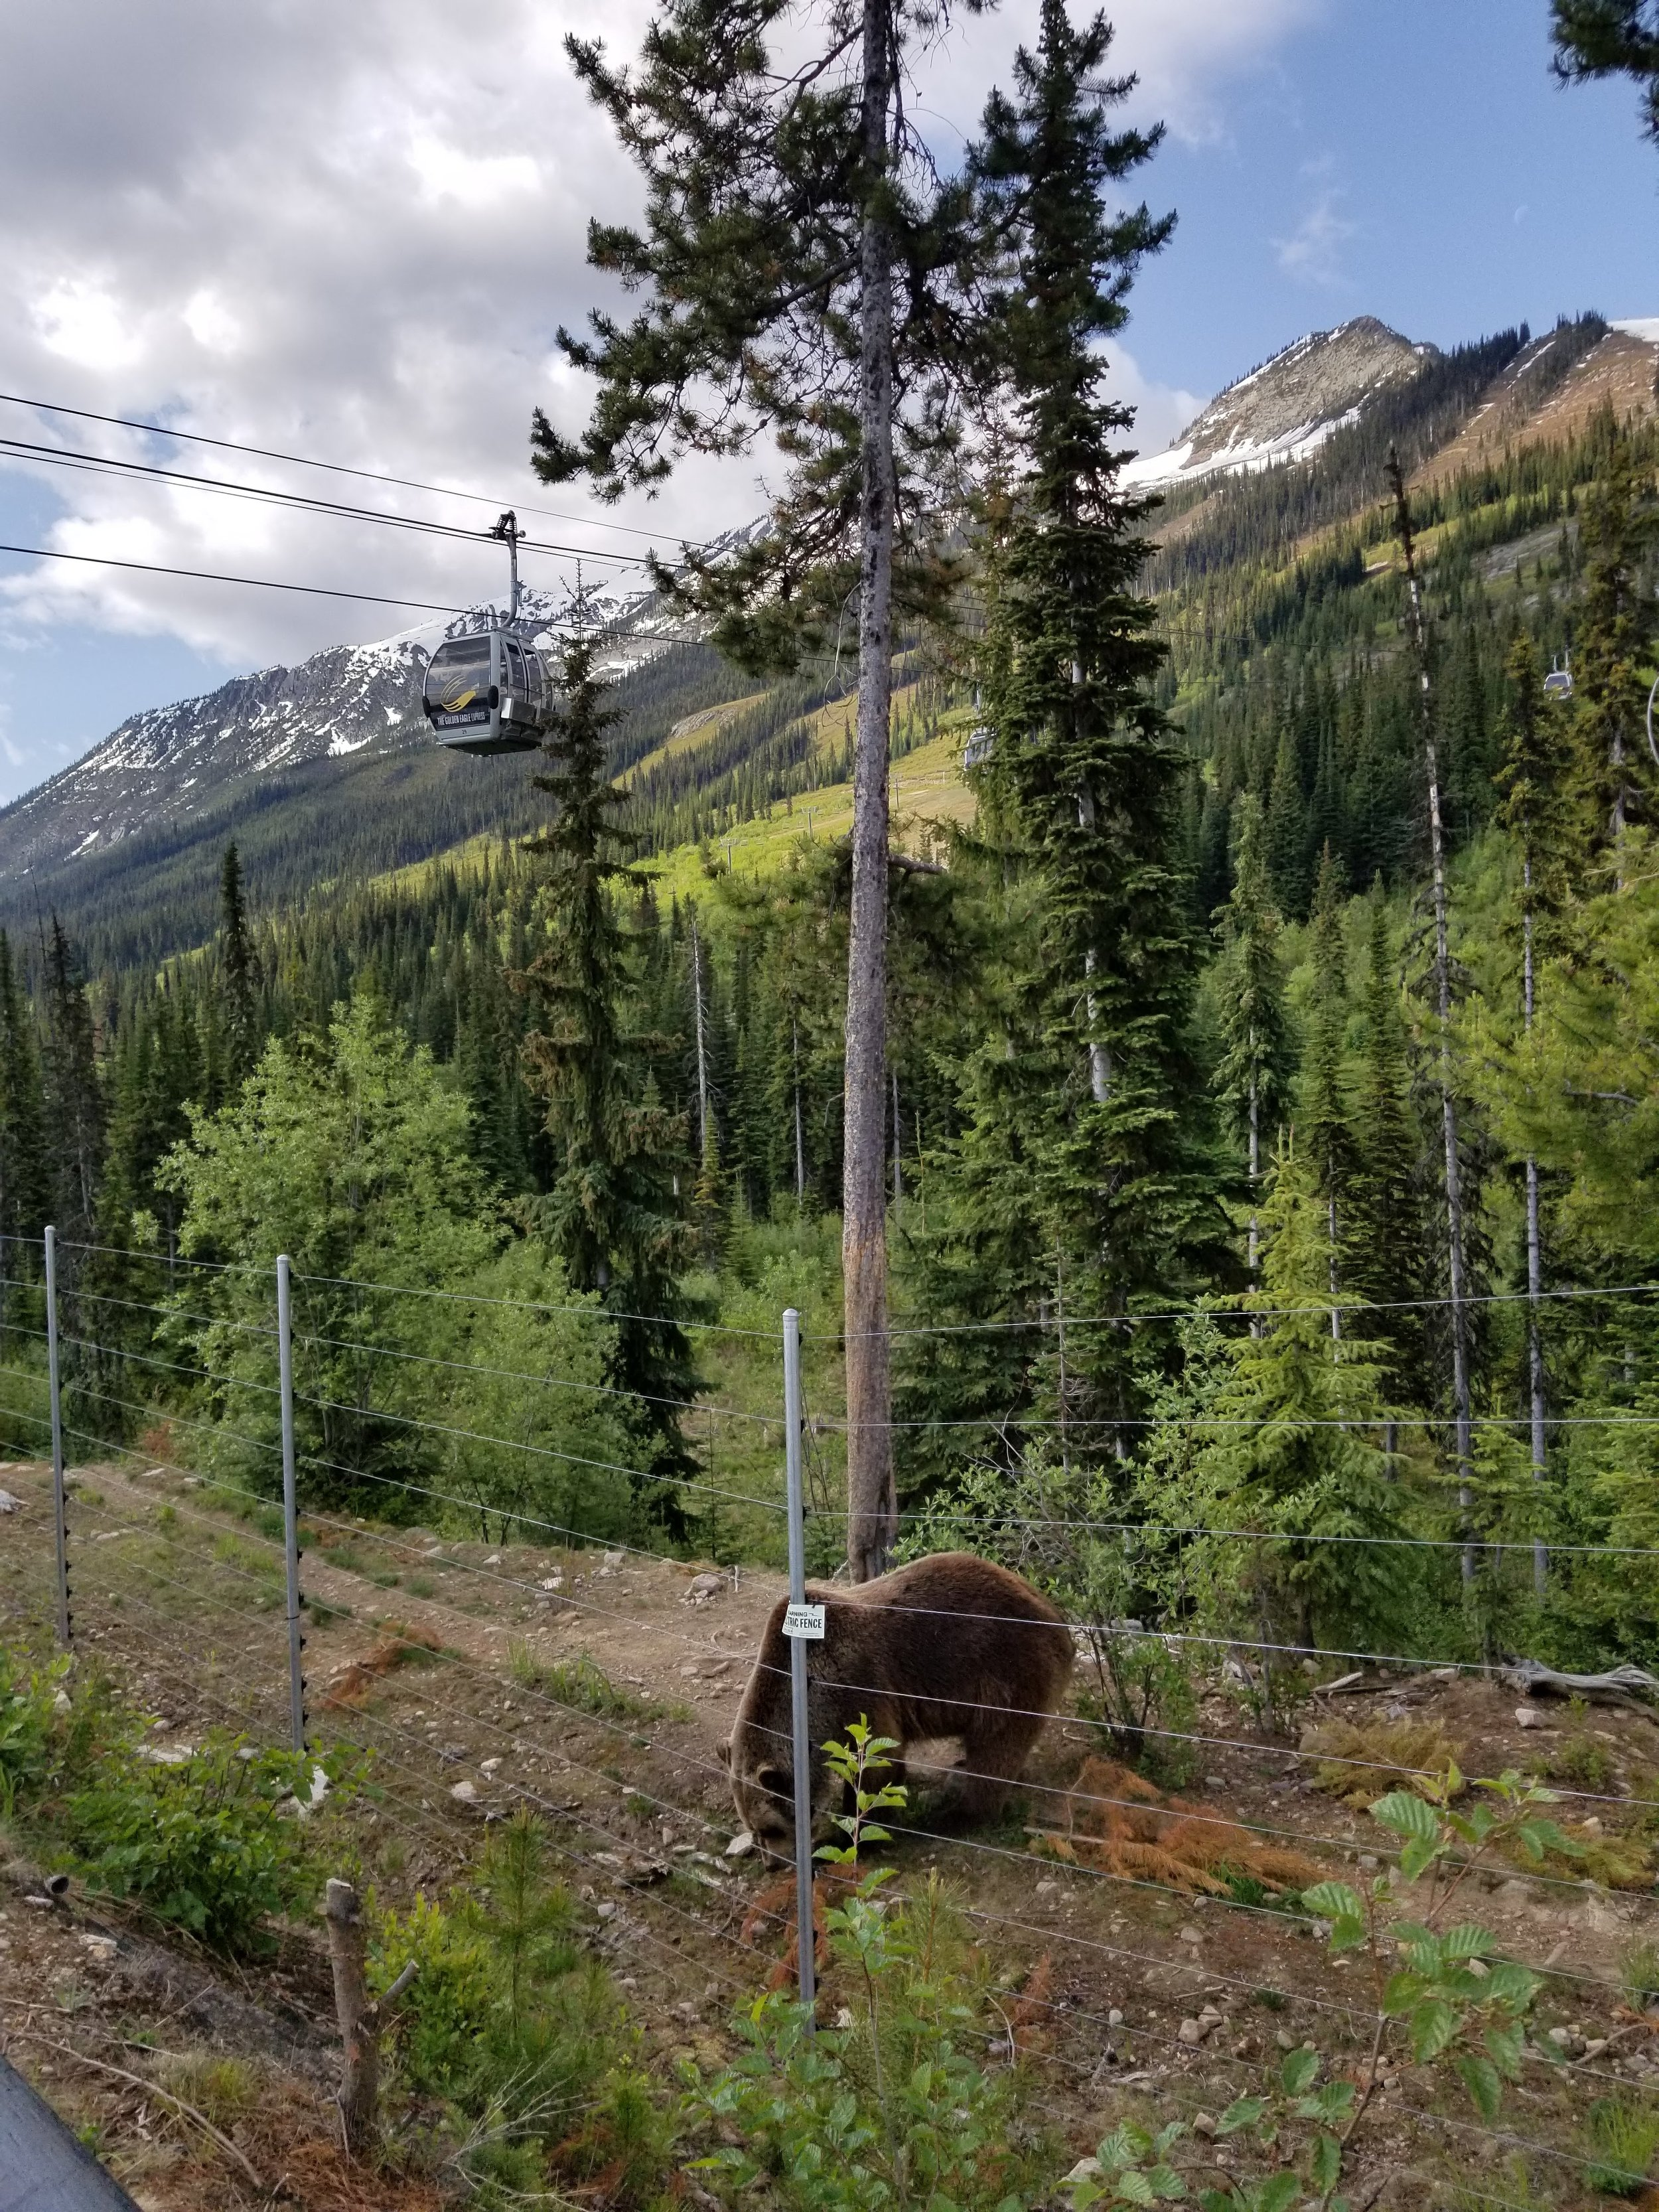 Kicking Horse gondola floats above Boo's habitat. Photo by Carrie Dow.